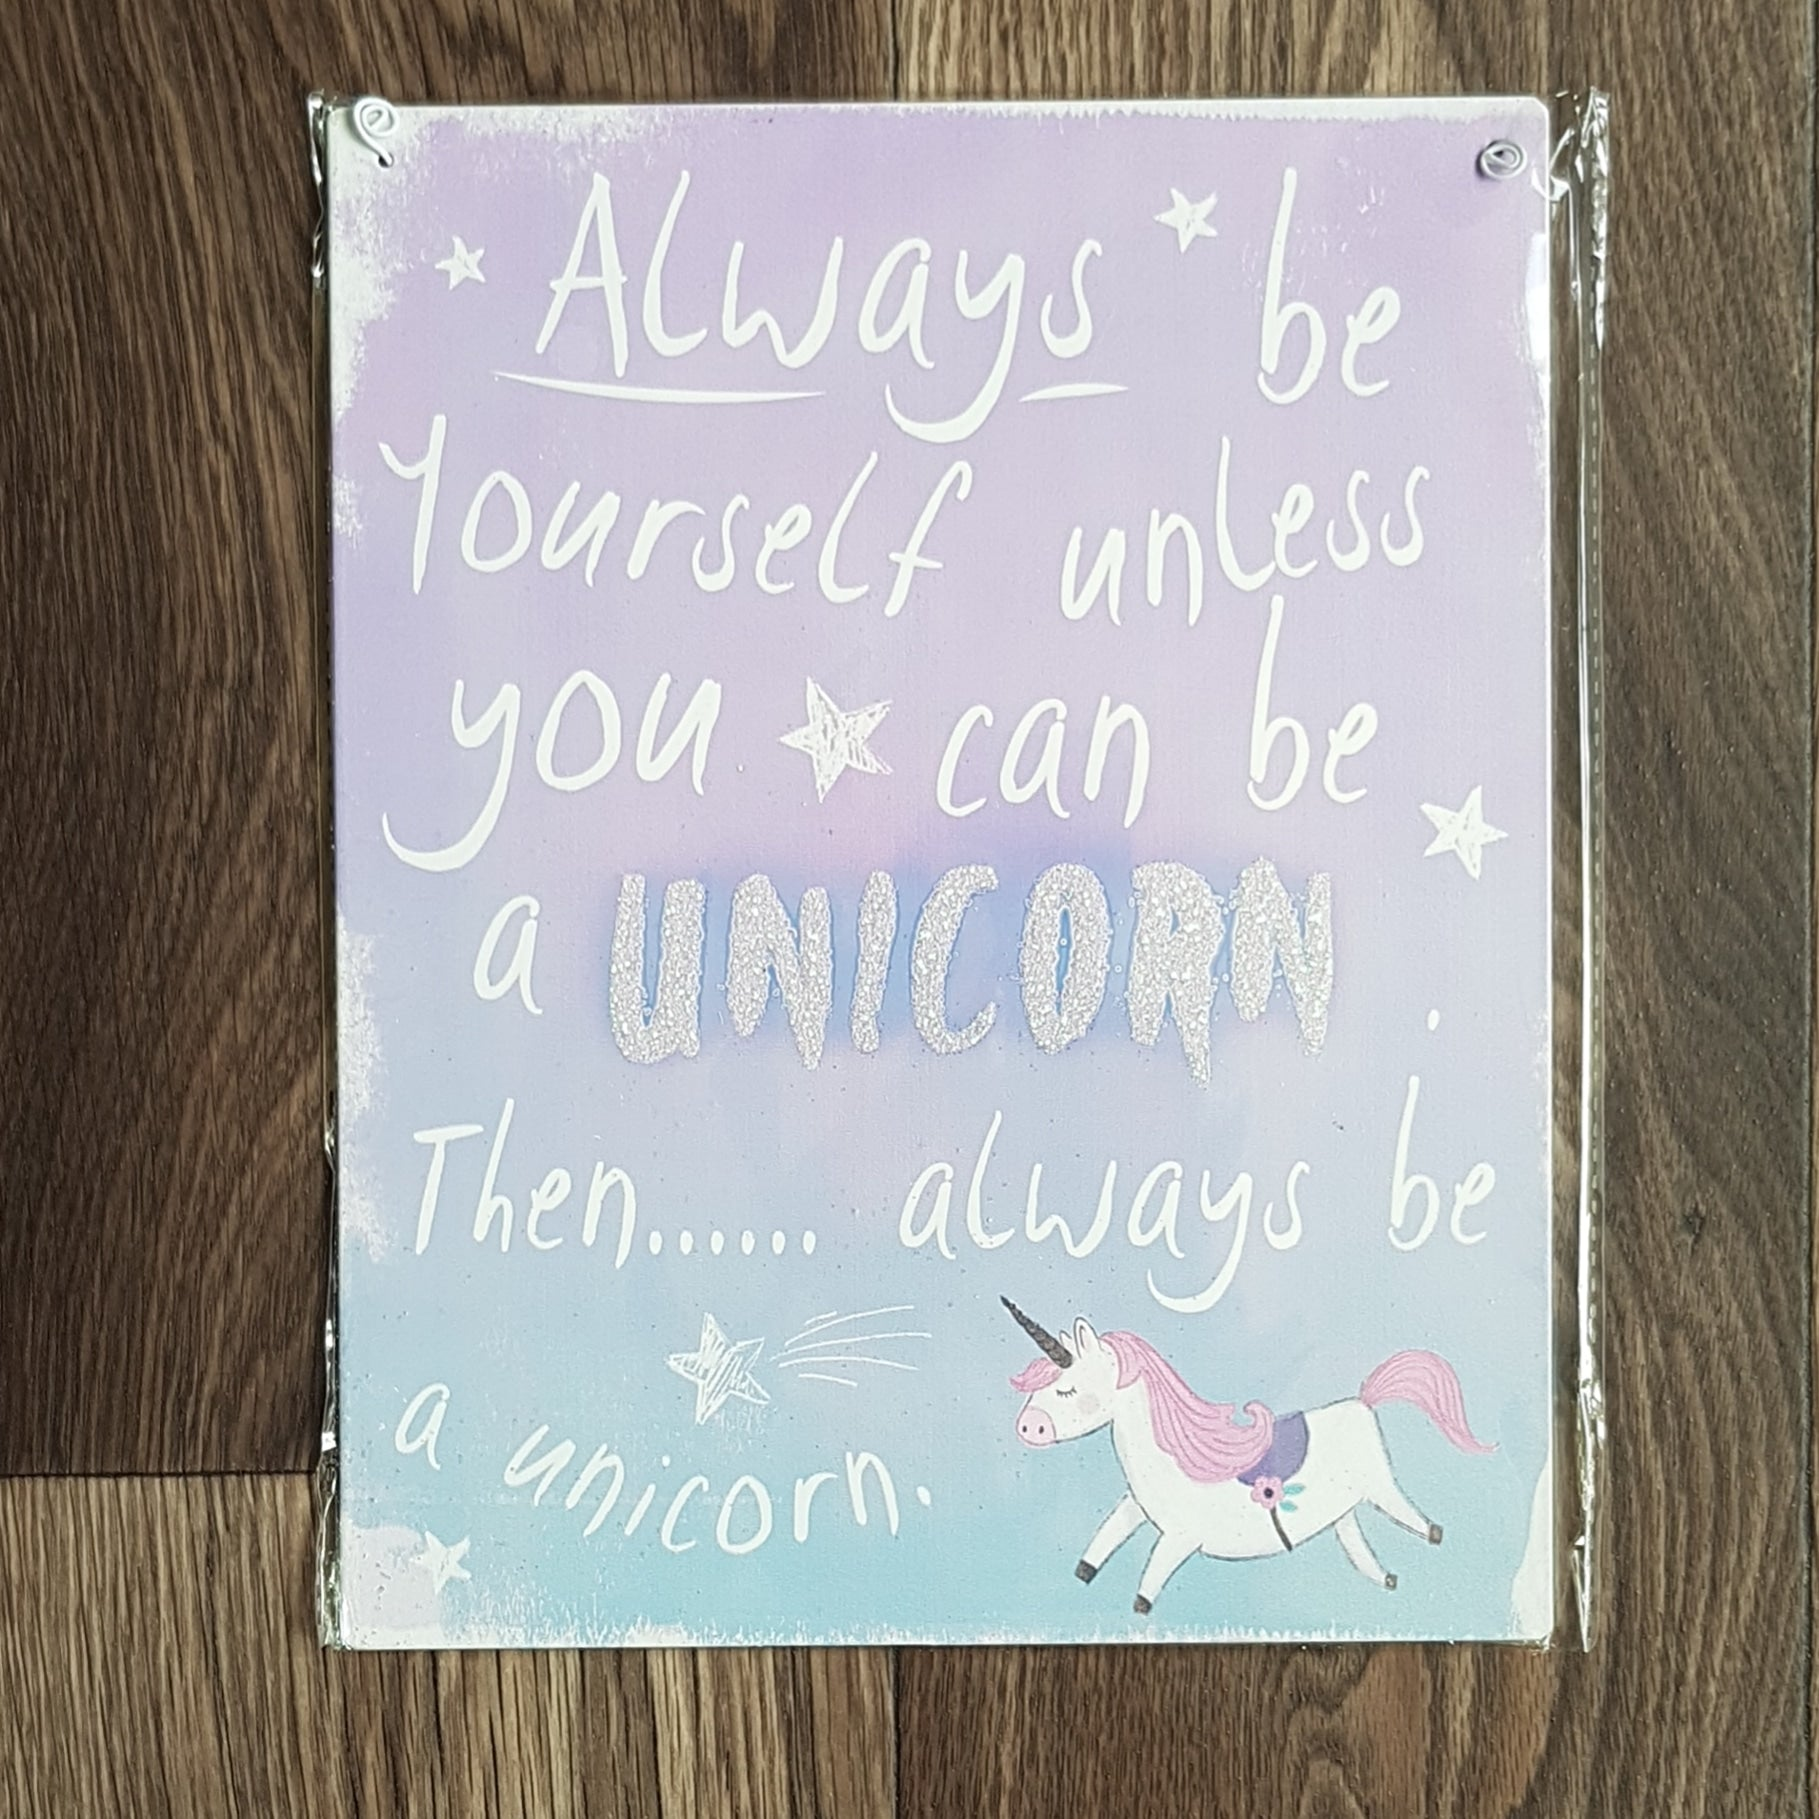 Always be yourself unless you can be a unicorn - hanging metal sign - The Future Image